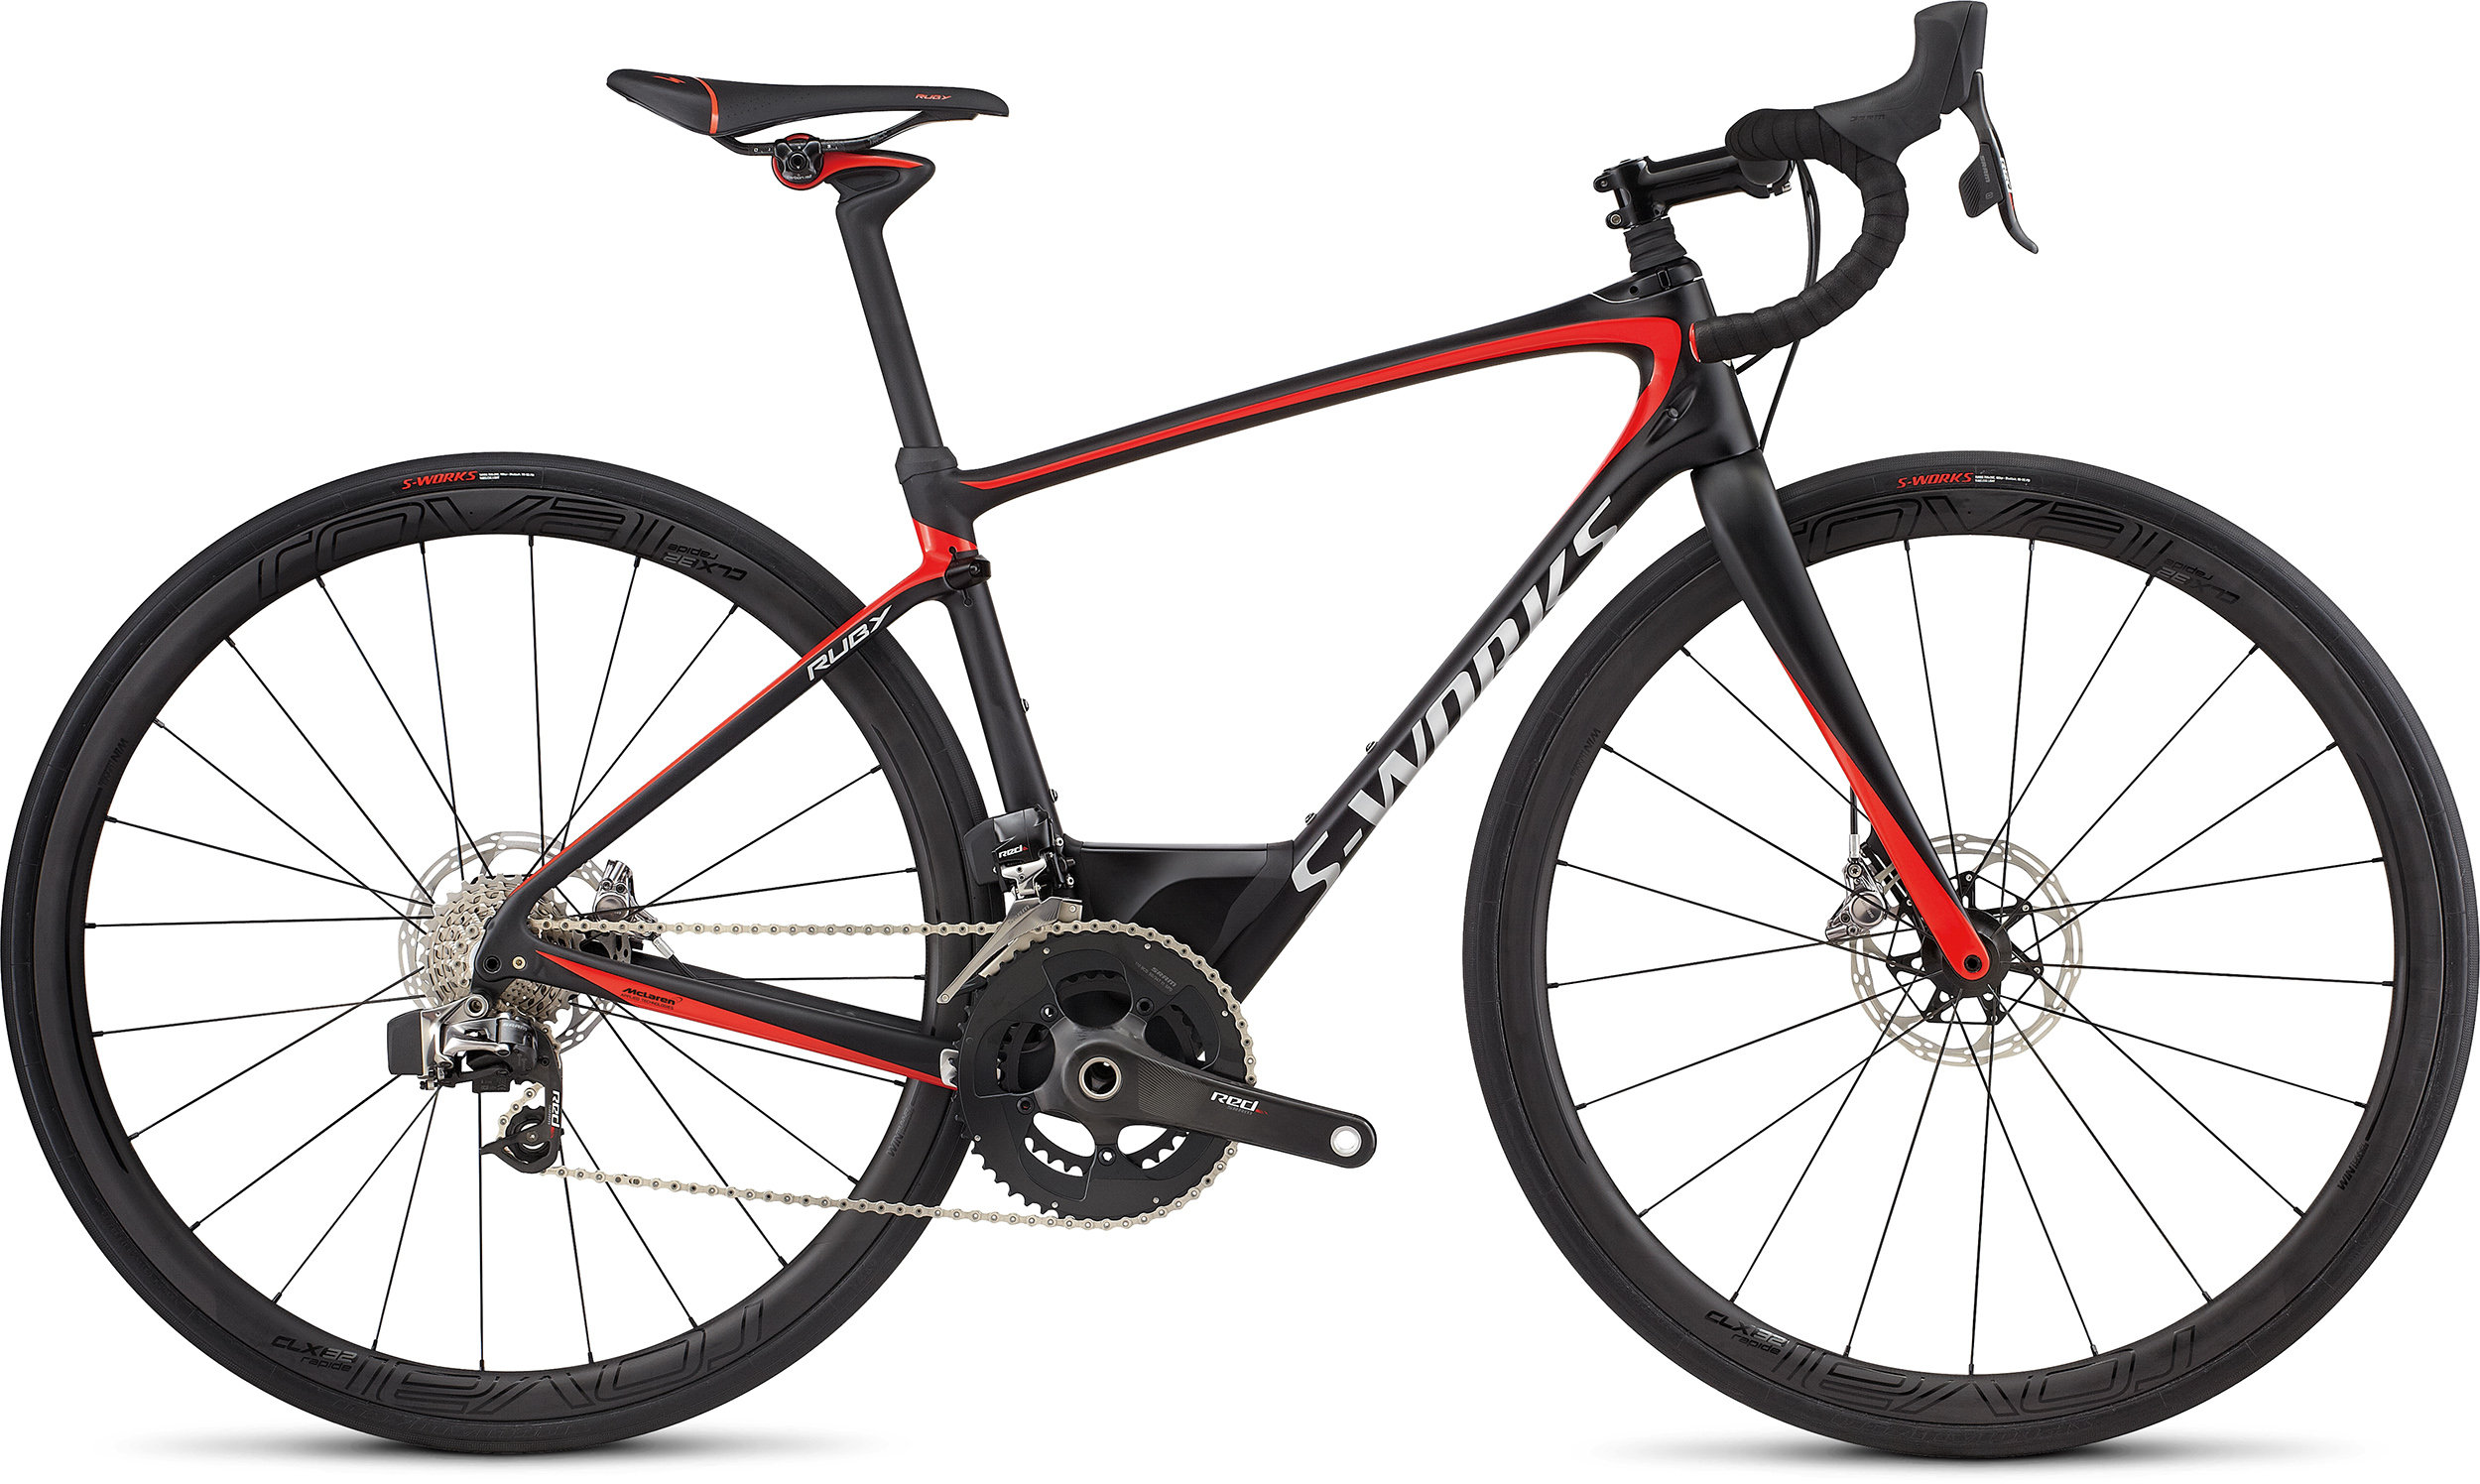 SPECIALIZED SW RUBY ETAP TARBLK/NRDCRED/CHRM 51 - Alpha Bikes